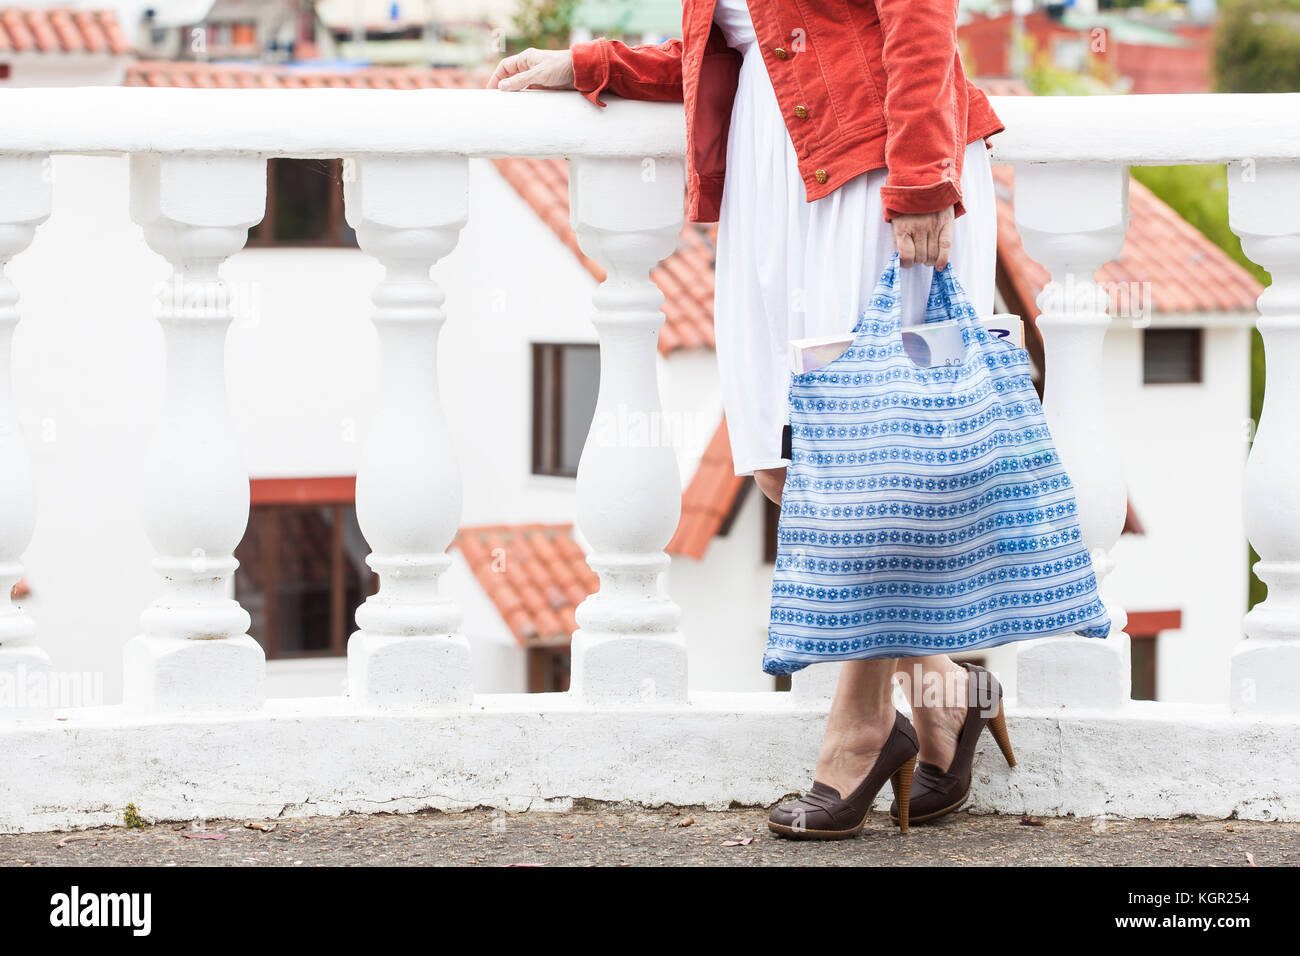 Woman carrying groceries in a reusable shopping bag - Stock Image